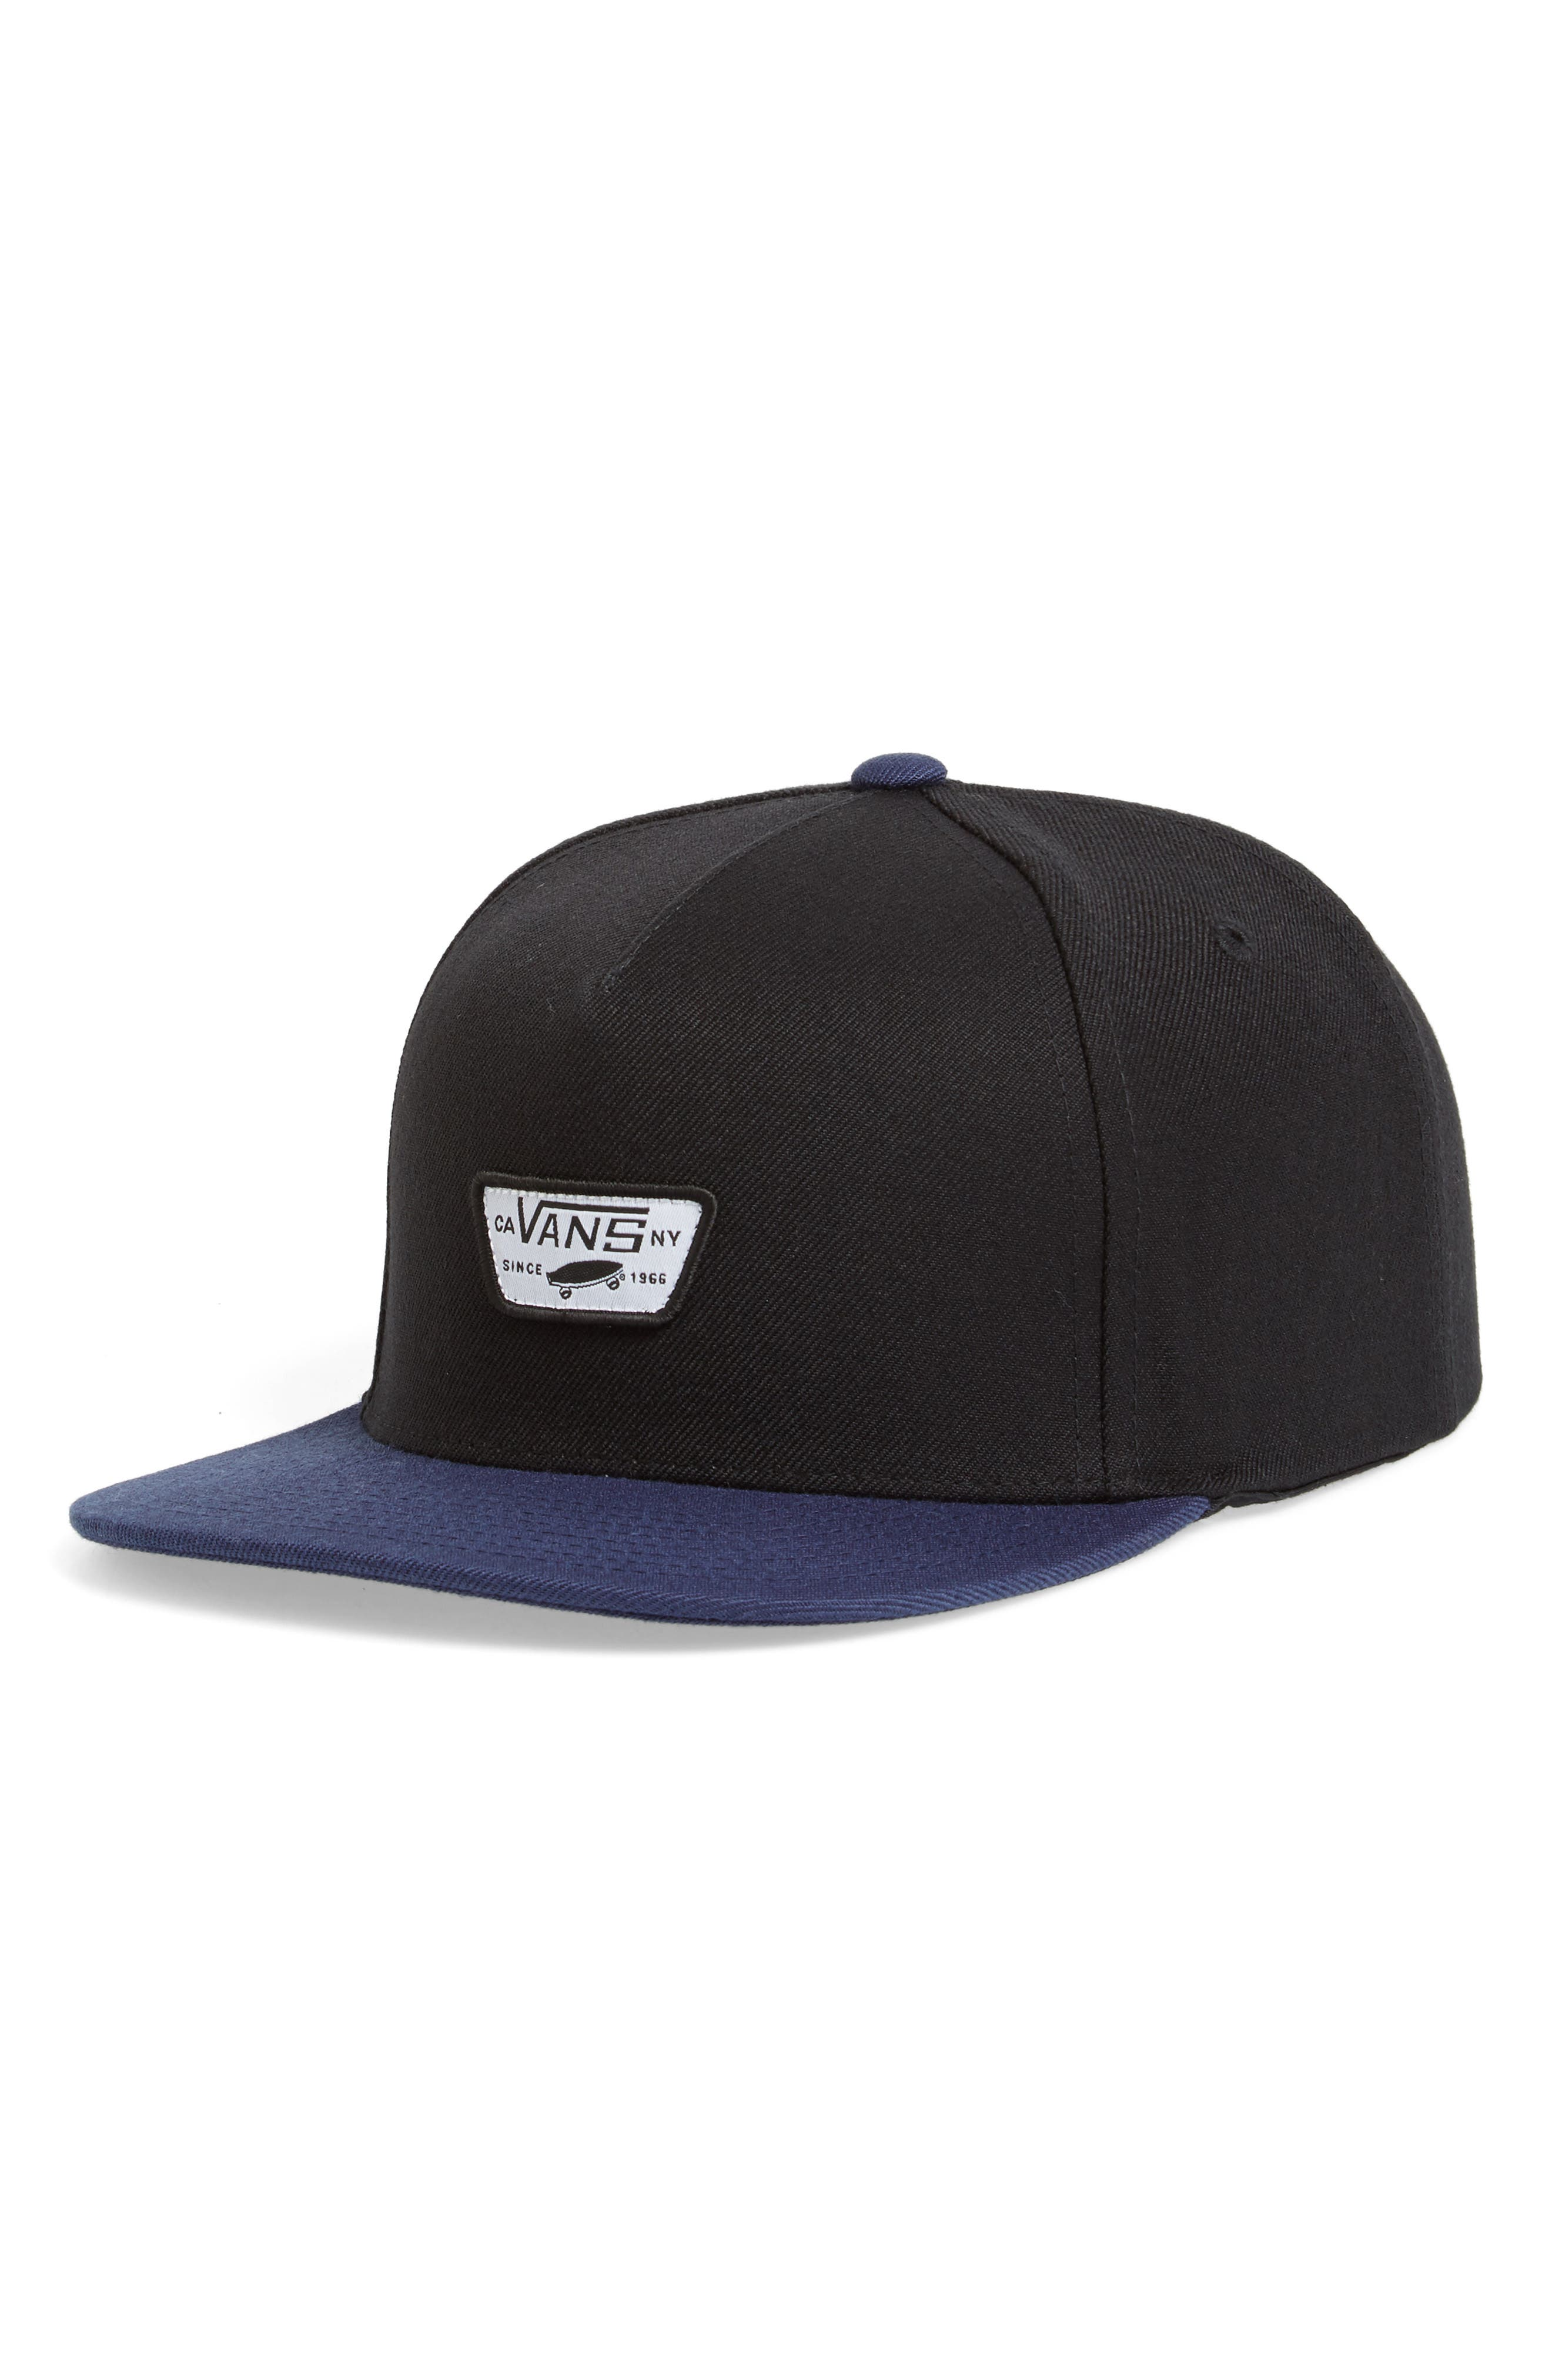 Mini Patch II Snapback Cap,                             Main thumbnail 1, color,                             Black/ Dress Blues